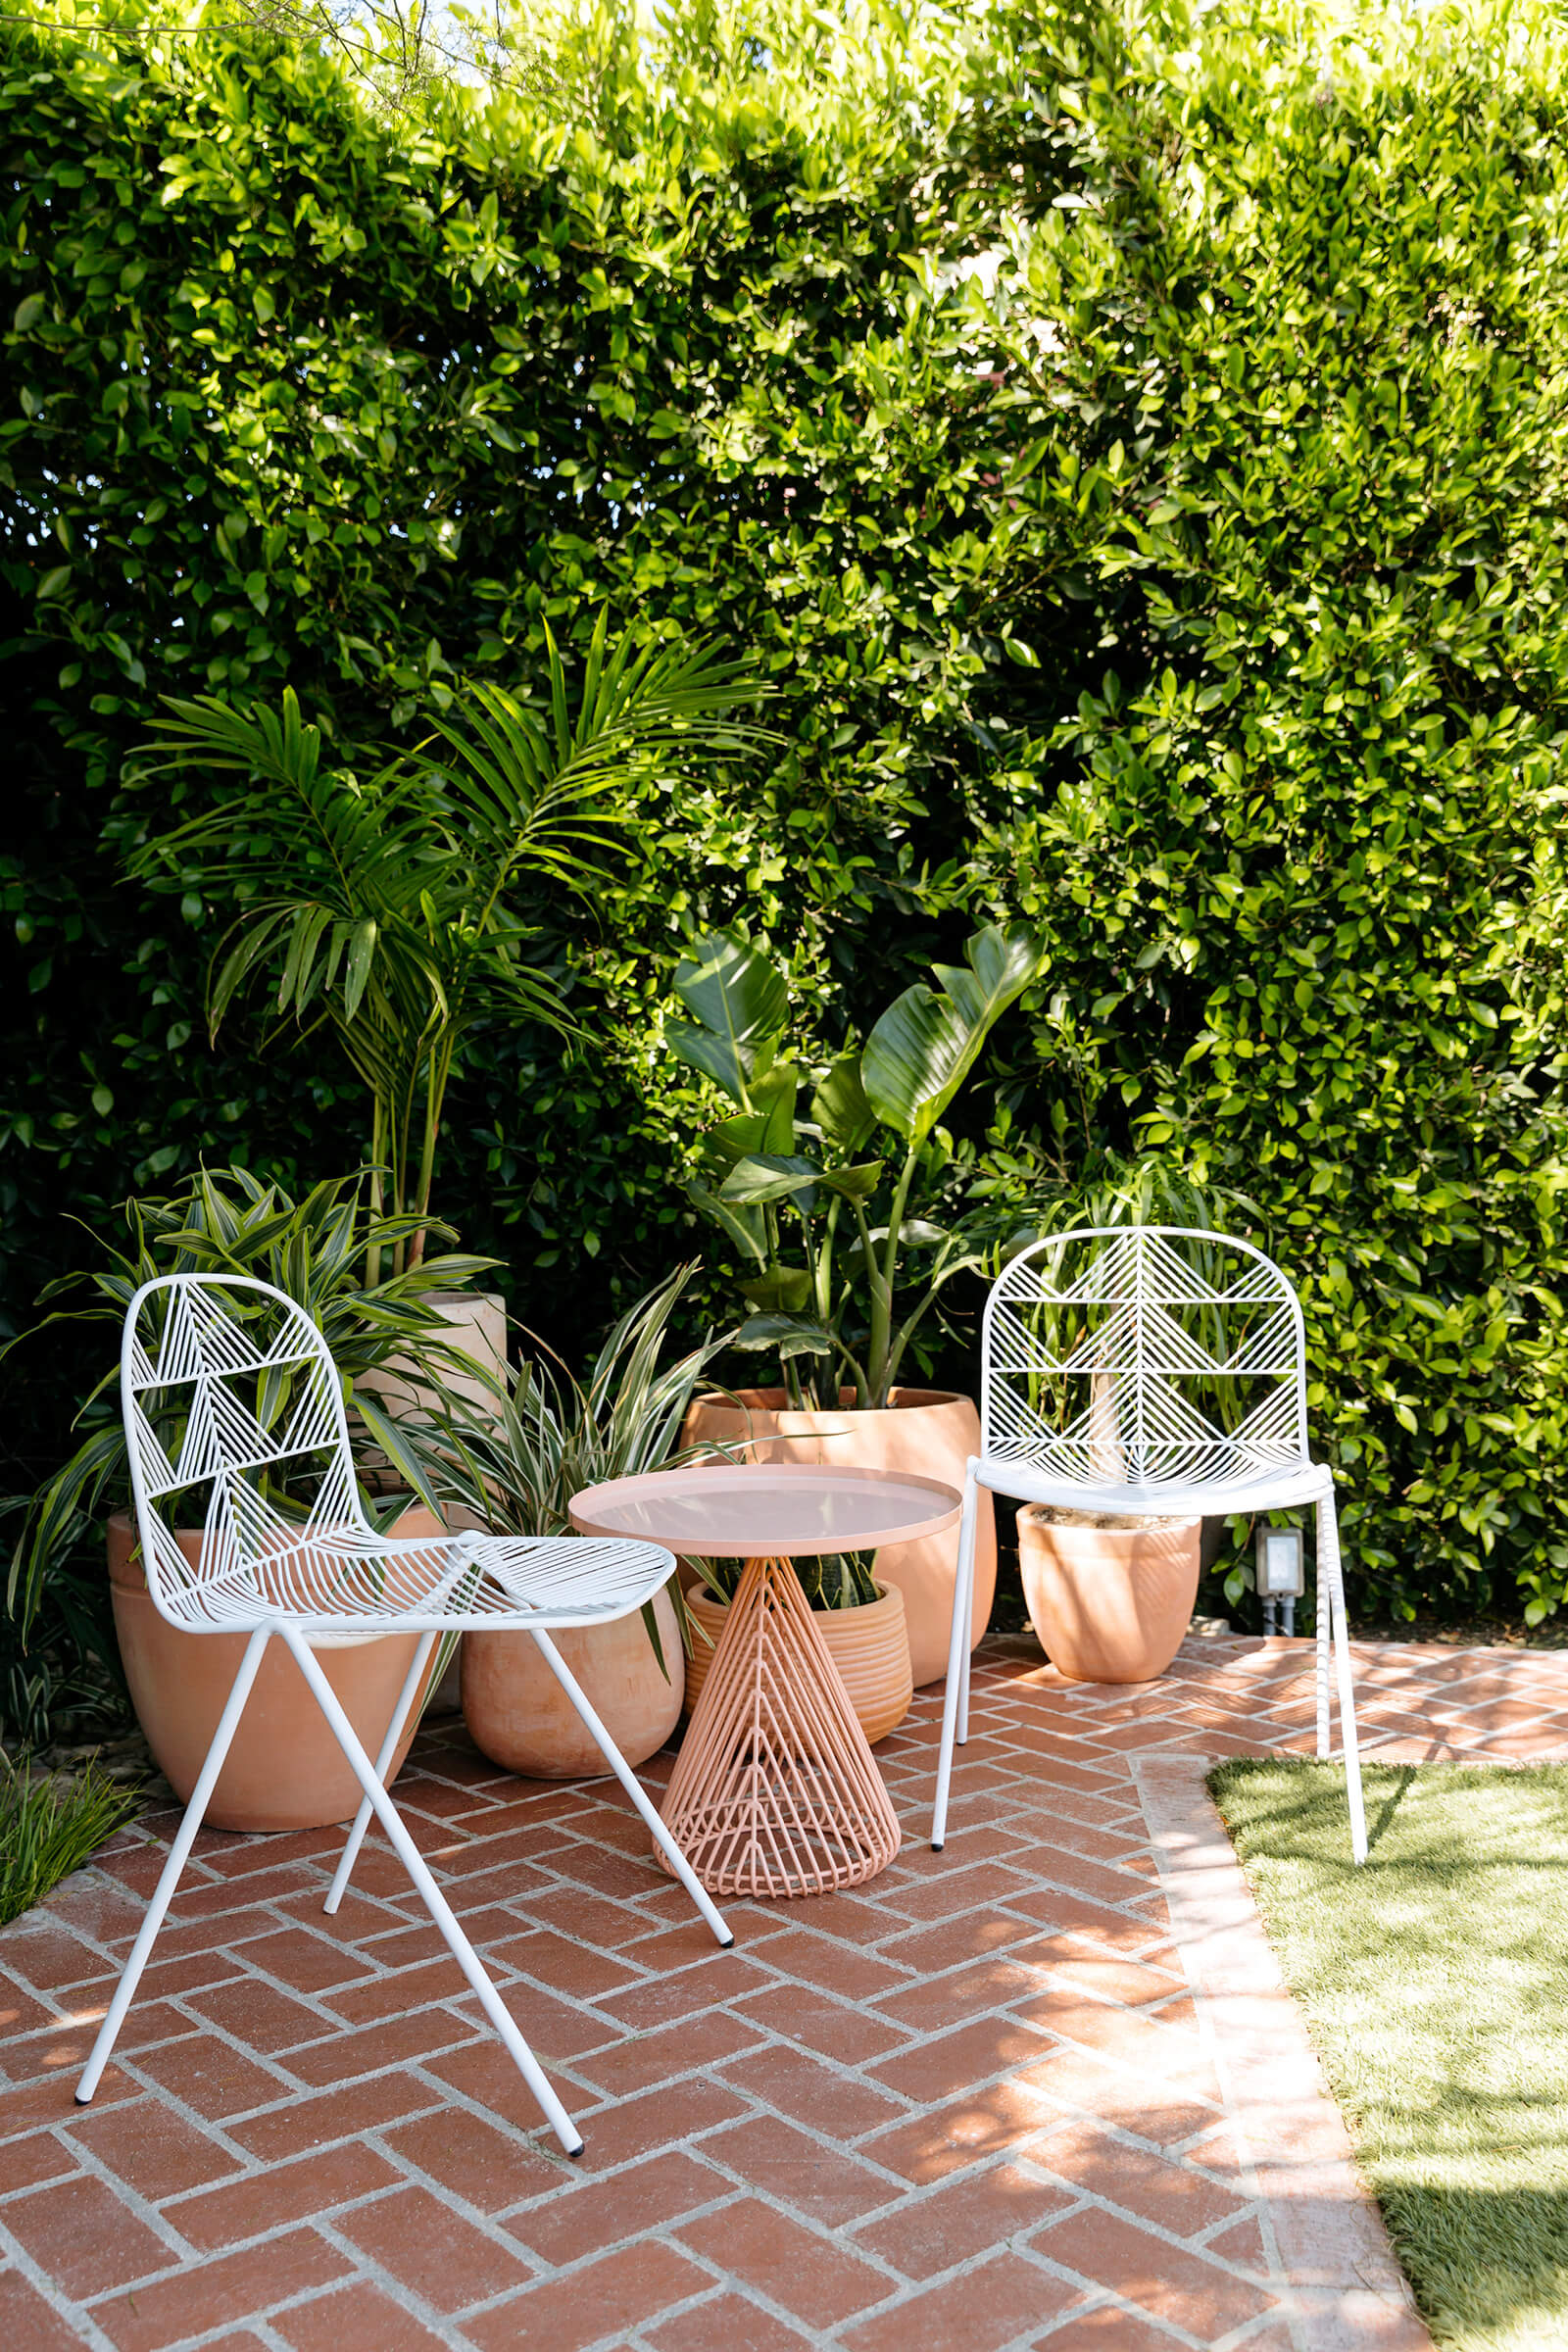 The Ruby Street's eye-catching outdoor furniture amidst the greens | The Ruby Street in LA is a coworking space by Working Holiday Studio and Francesca De La Fuente | STIRworld